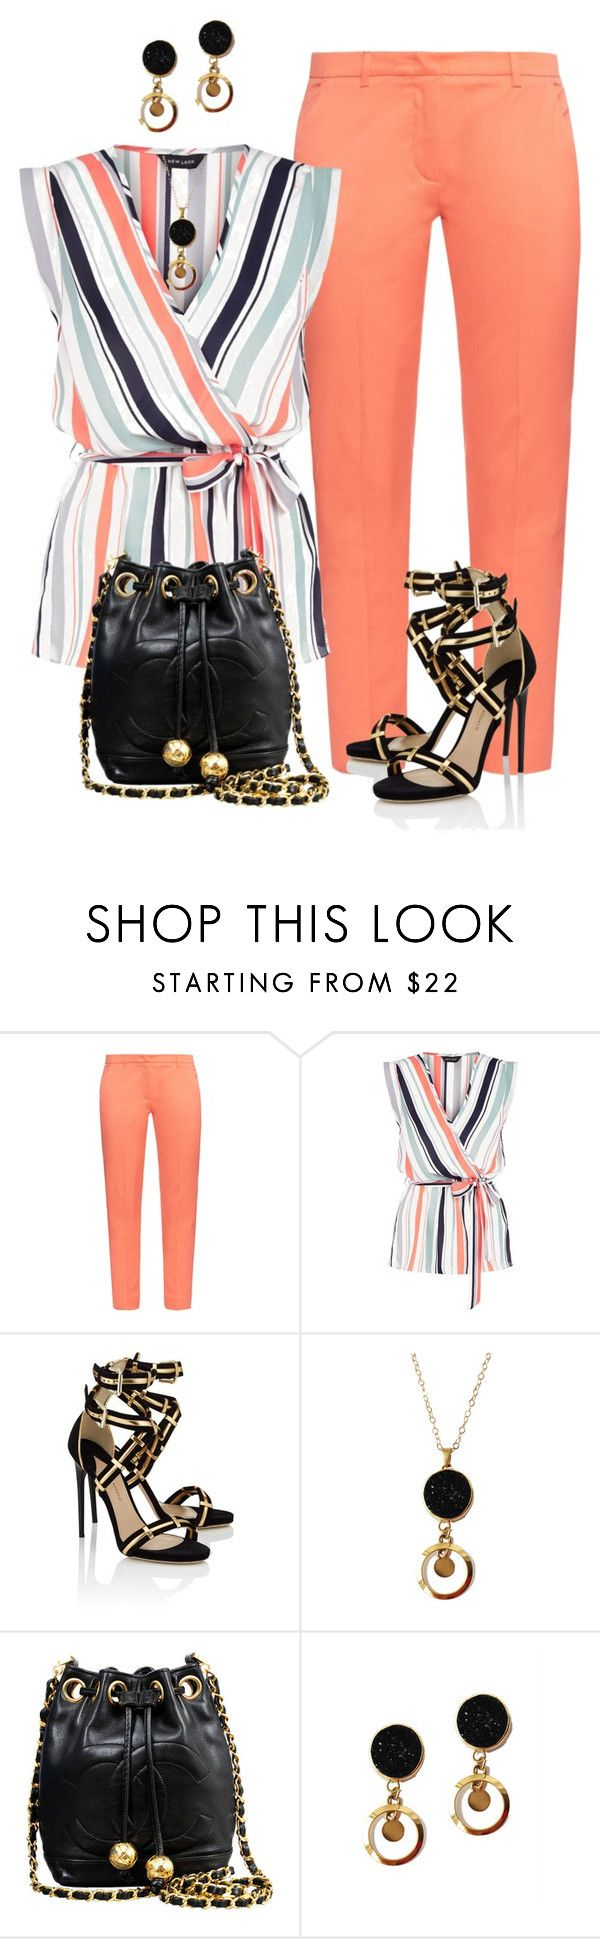 """Sin título #1430"" by marisol-menahem ❤ liked on Polyvore featuring Weekend Max Mara, New Look, Paul Andrew and Chanel"